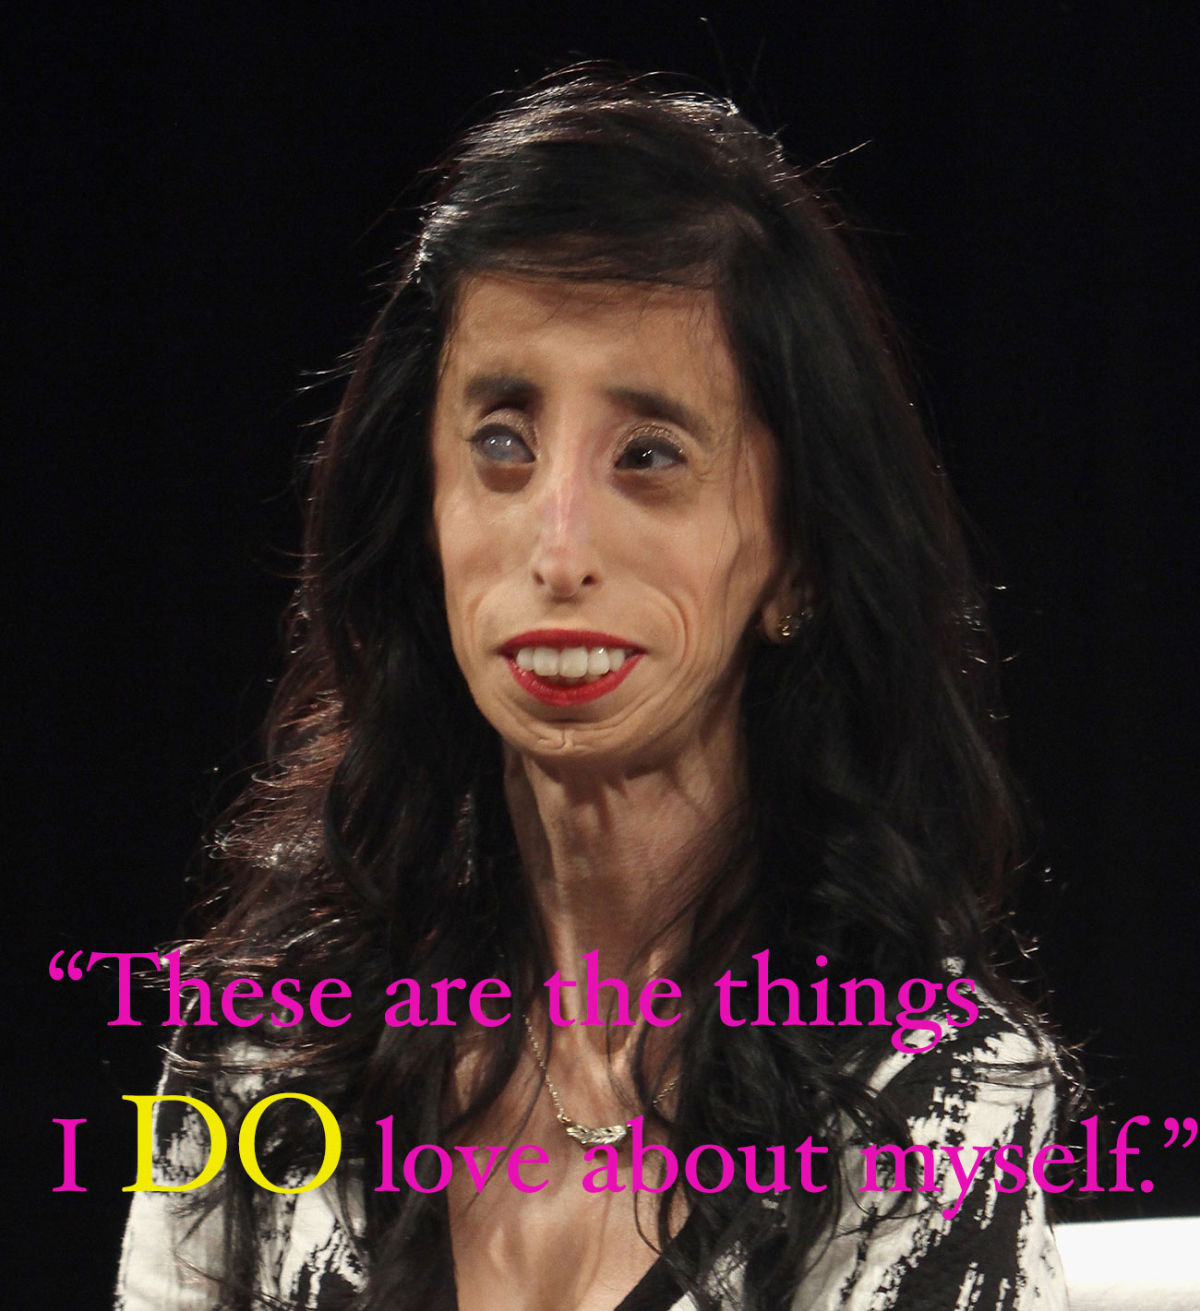 She Was Called The World's Ugliest Woman, Now She's An Inspiration